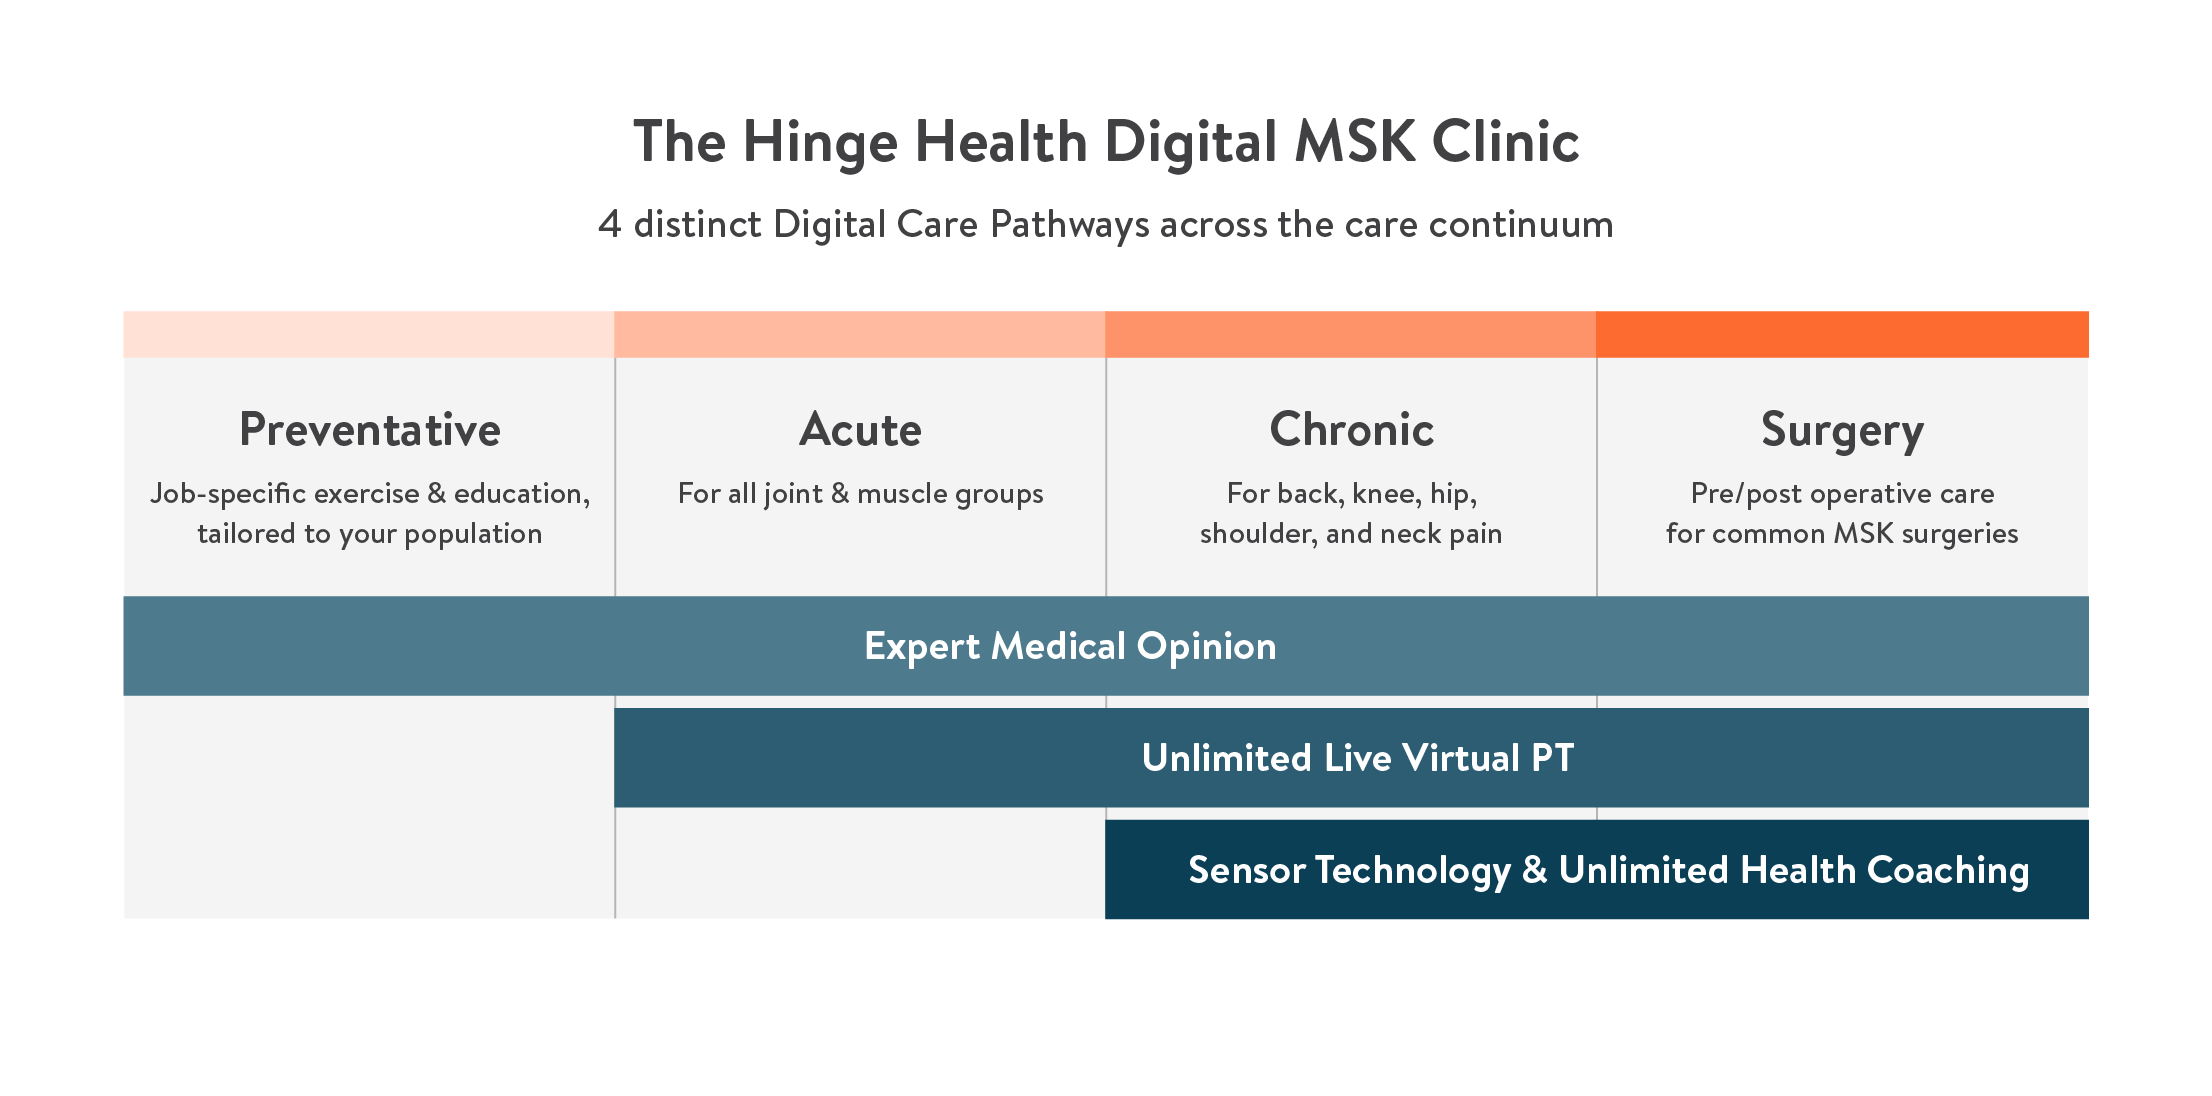 hh digital msk clinic image